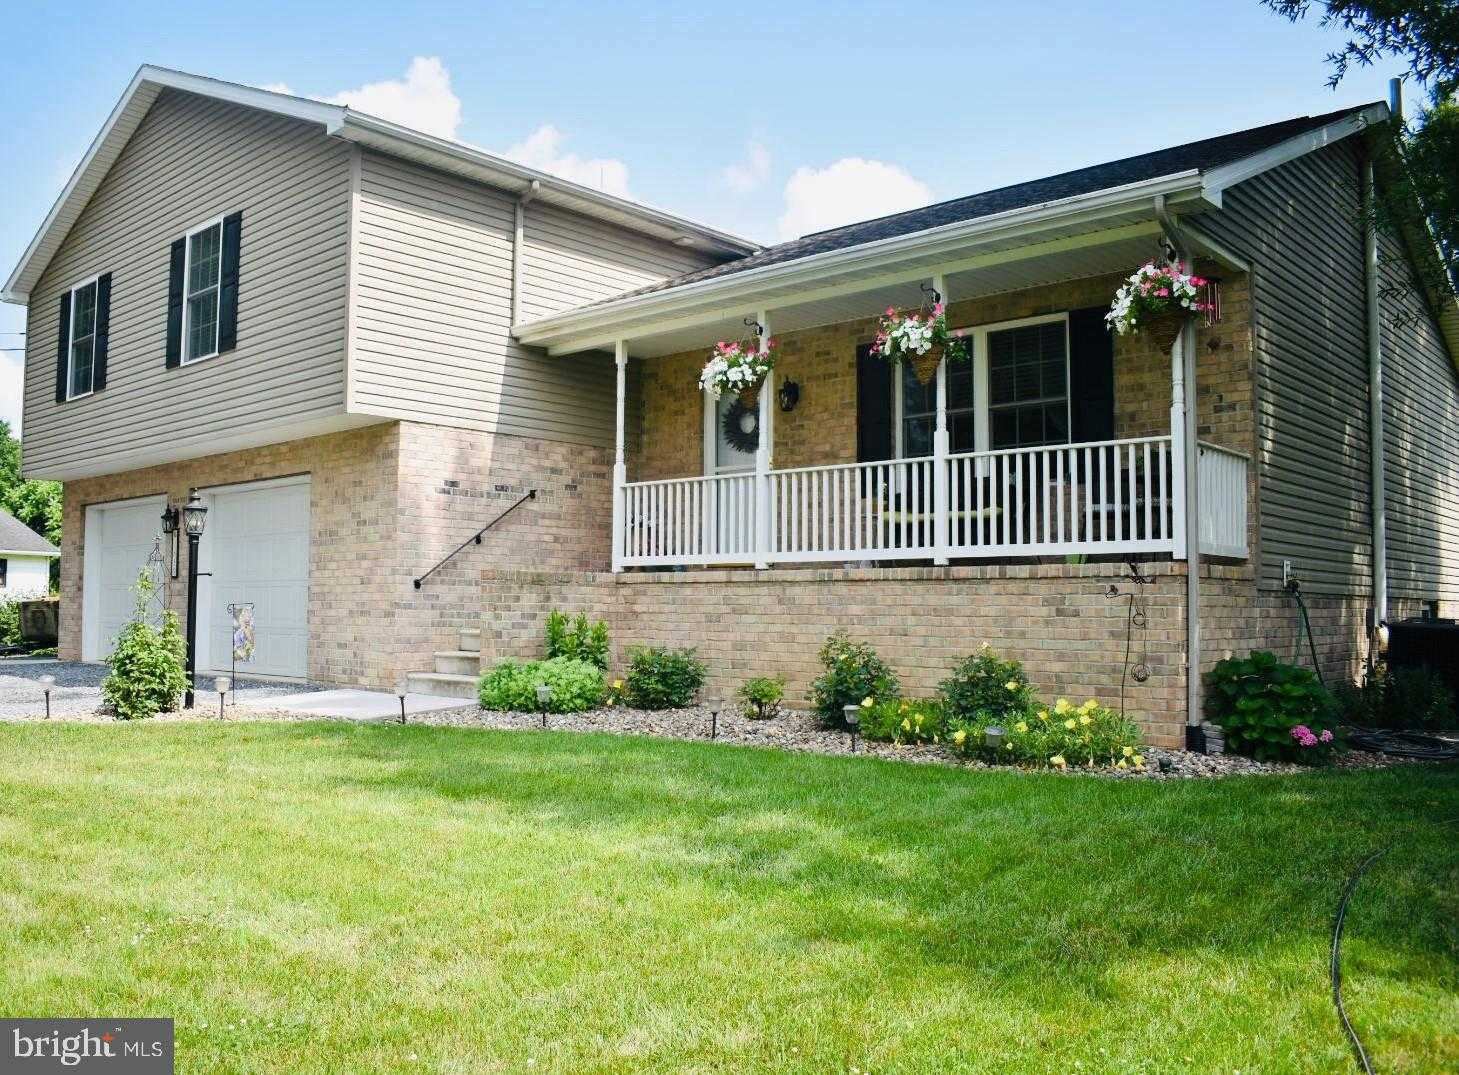 $295,900 - 4Br/3Ba -  for Sale in None Available, Chambersburg